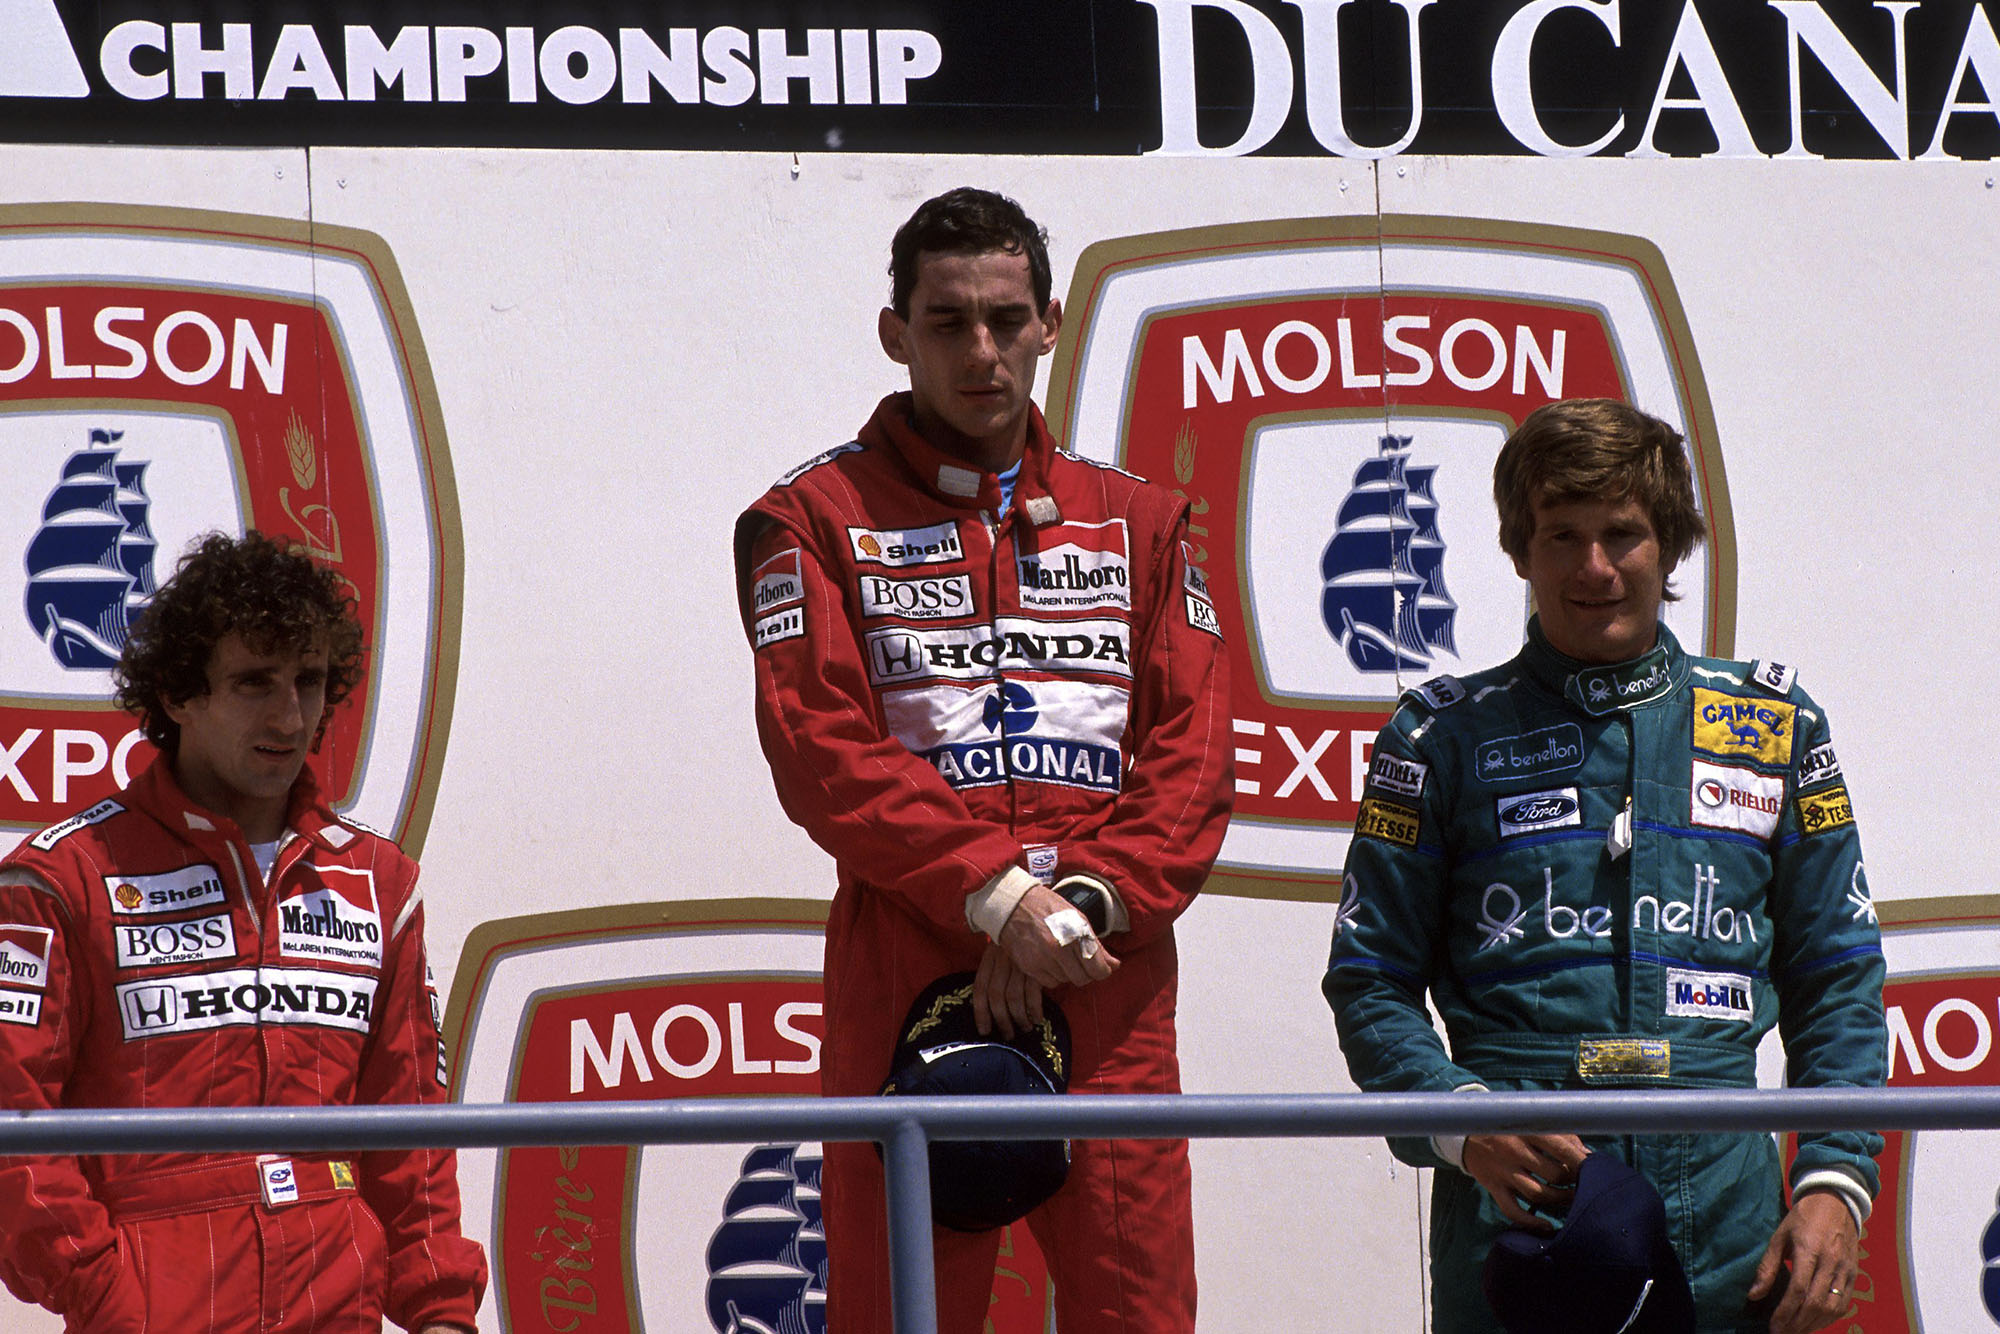 1988 CAN GP podium